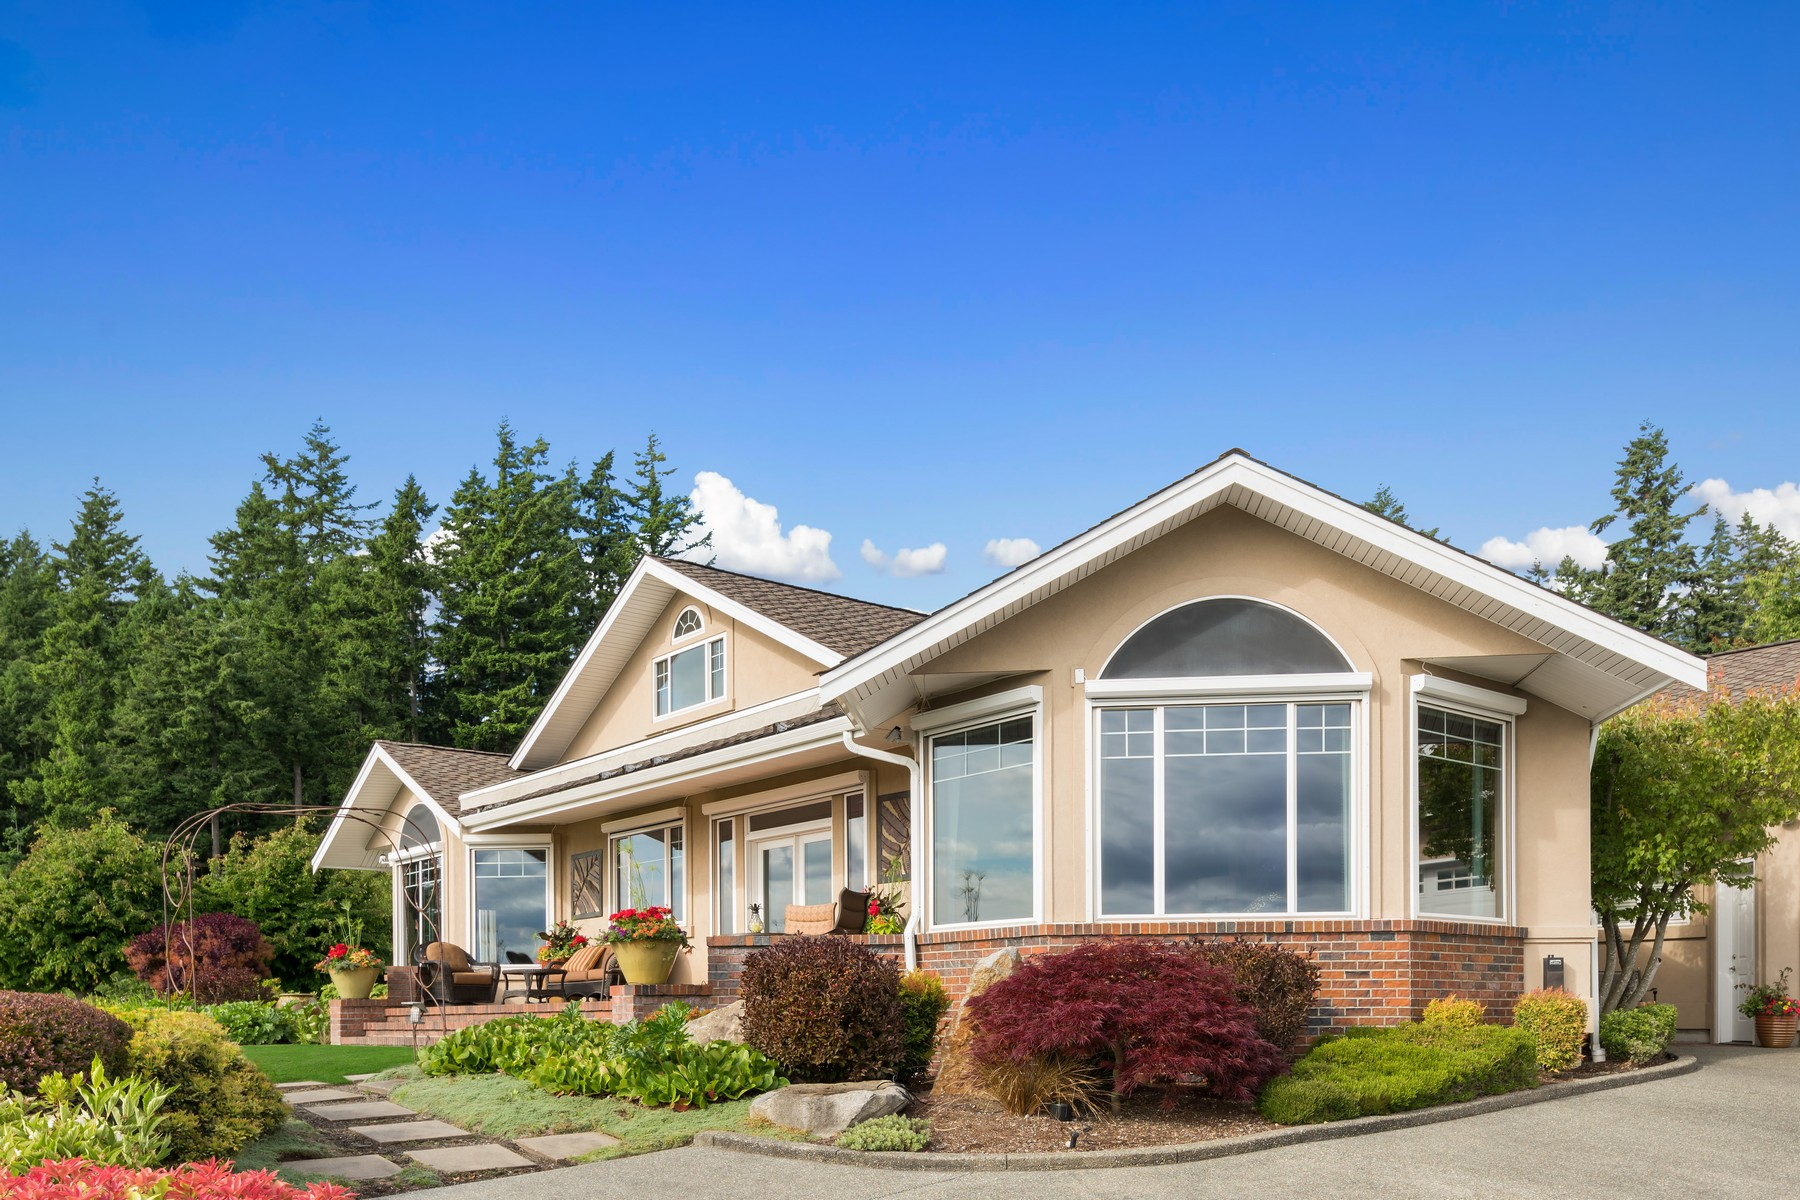 Single Family Home for Sale at The Bluff in Bonney Lake 7631 176th Ave E Bonney Lake, Washington 98391 United States